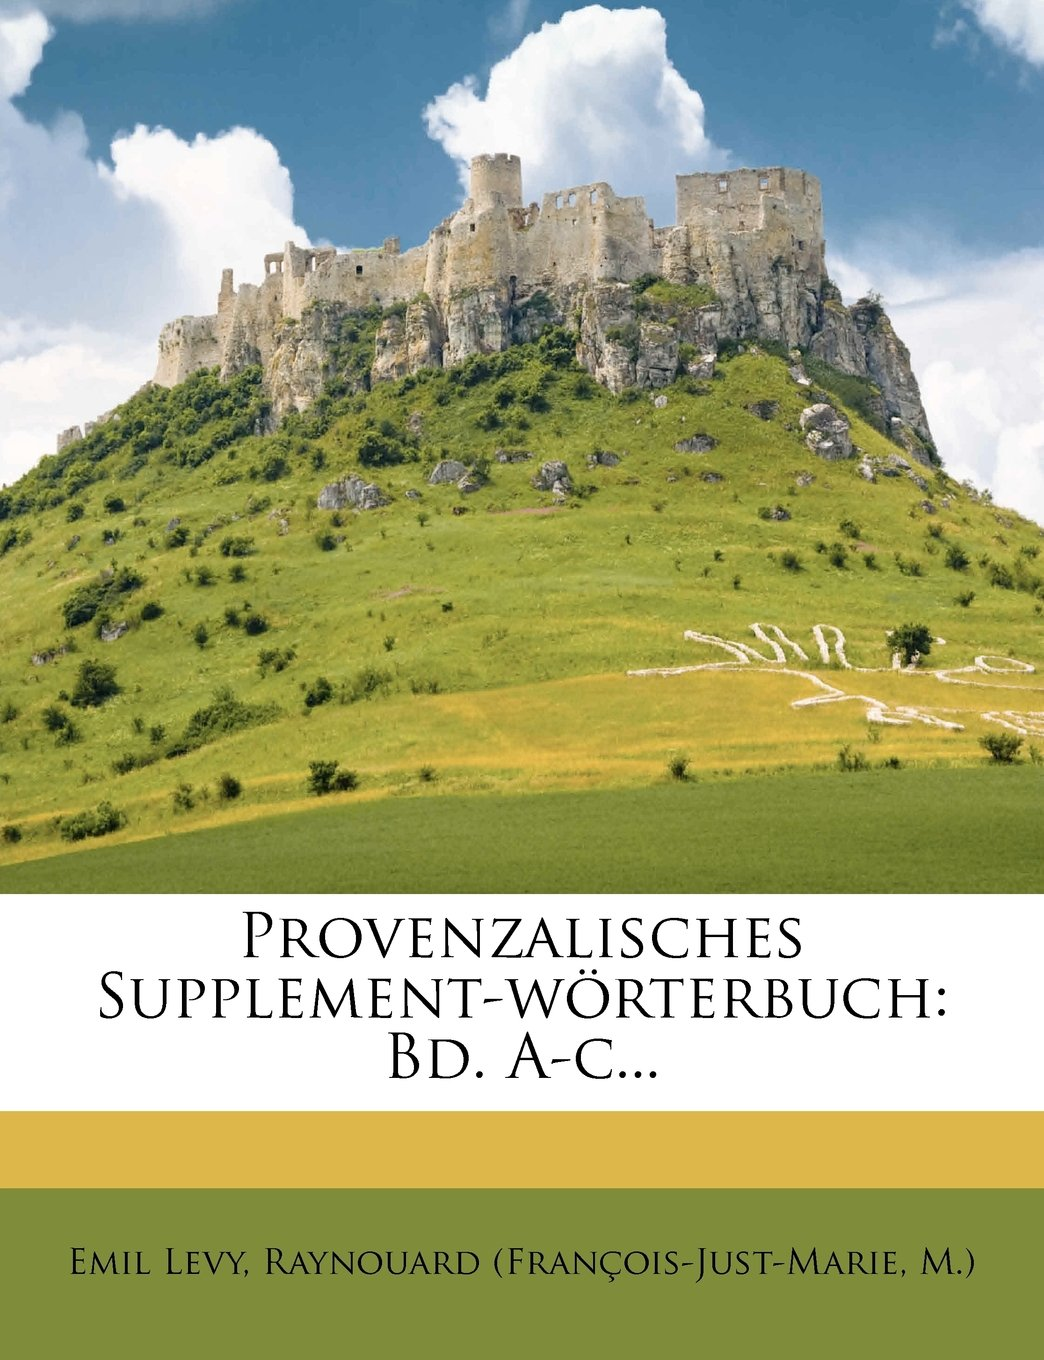 Provenzalisches Supplement-Worterbuch: Bd. A-C... (German Edition) PDF